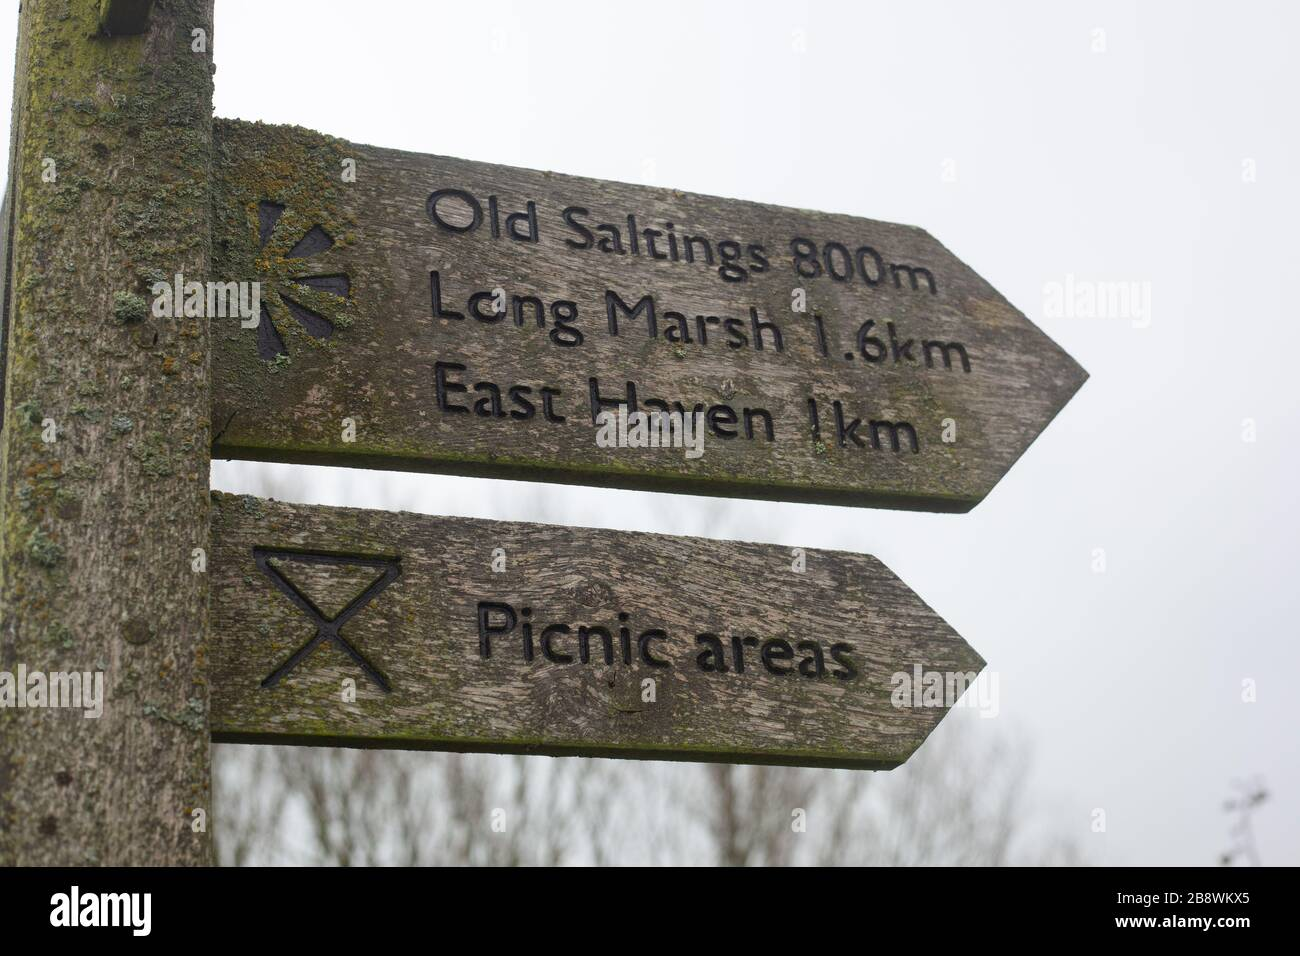 Direction sign providing guidance to walkers and ramblers to the Old Saltings, Long Marsh, East Haven and Picnic areas at Bowers Gifford, Essex, UK Stock Photo